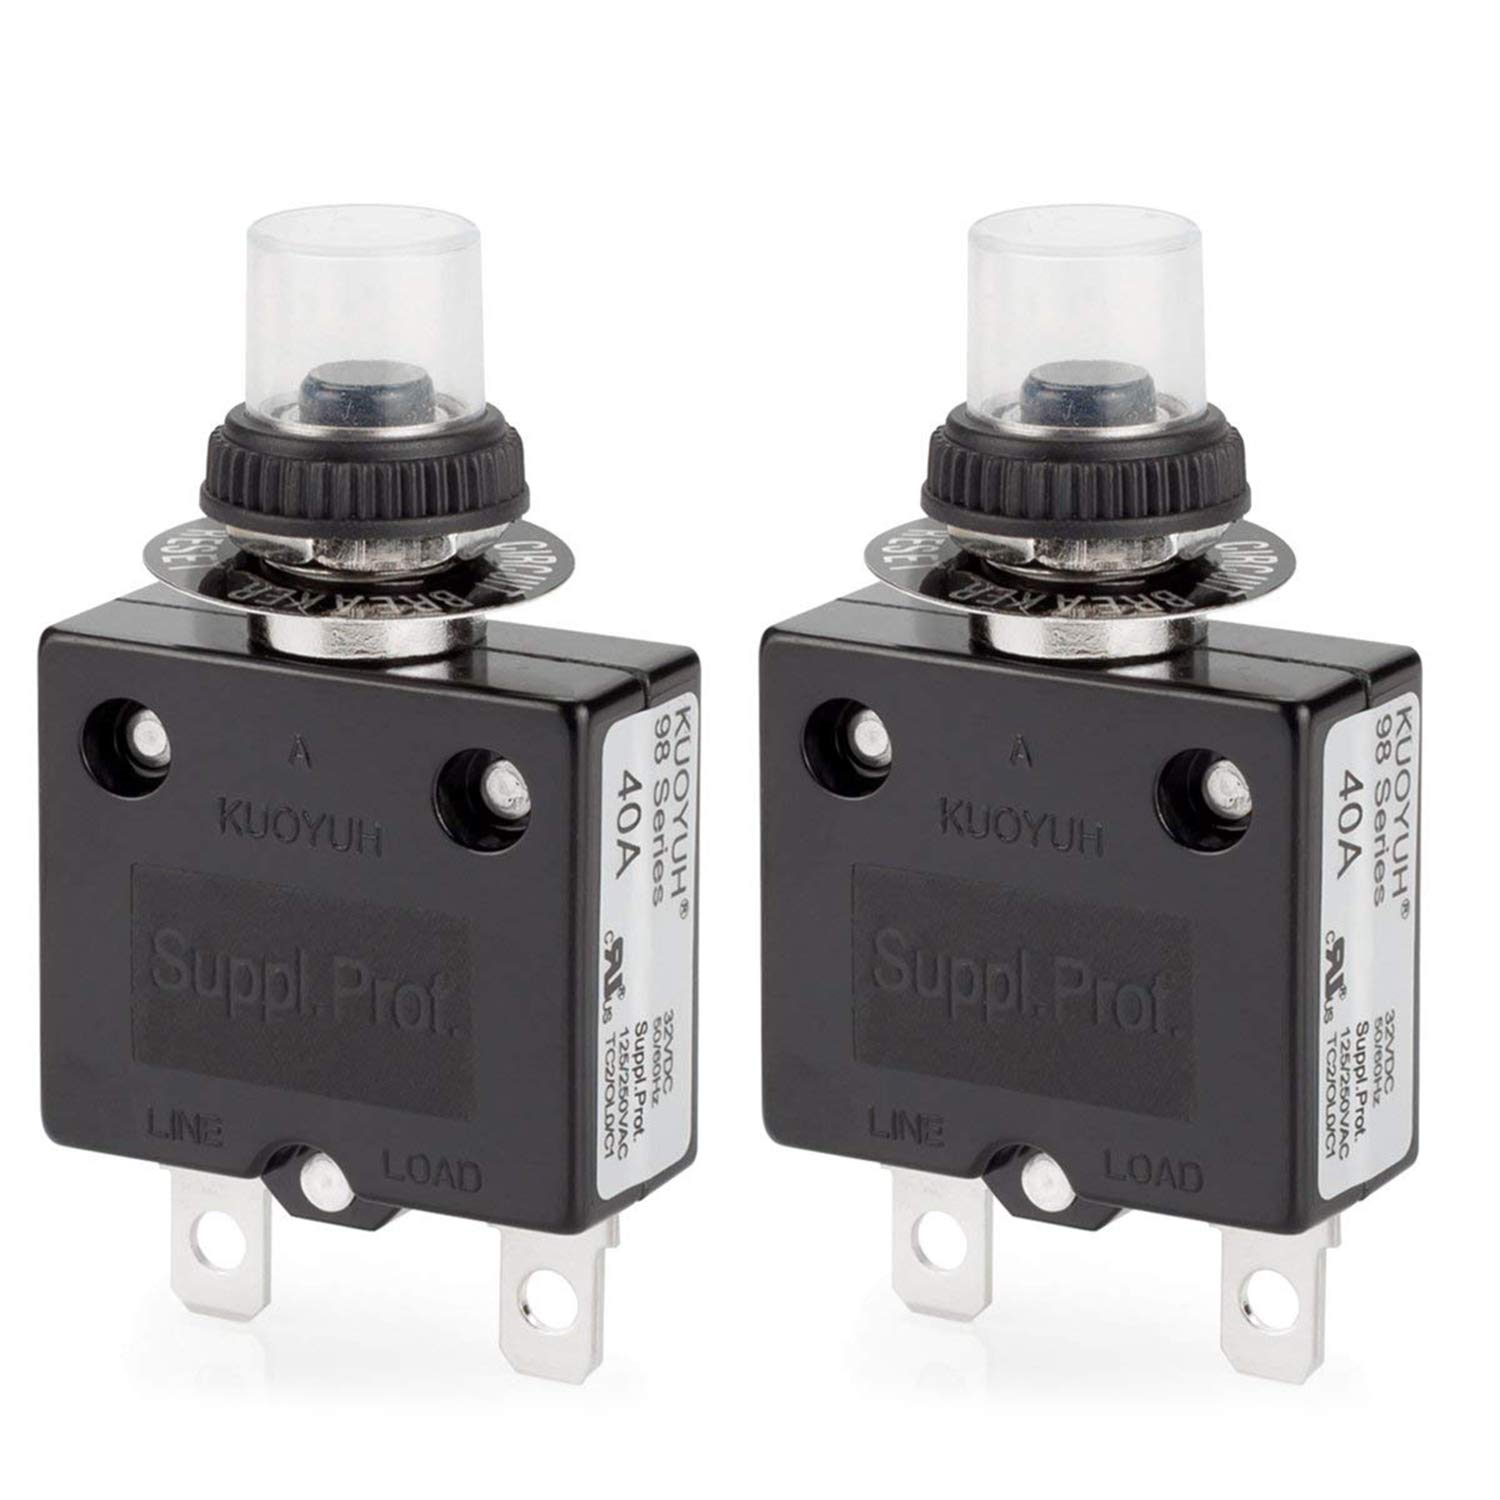 Thermal Circuit Breaker, DIYhz 40 Amp Push Button Manual Reset Circuit Breaker 32V DC 125/250VAC 50/60Hz with Quick Connect Terminals and Waterproof Button Transparent Cap 2Pcs